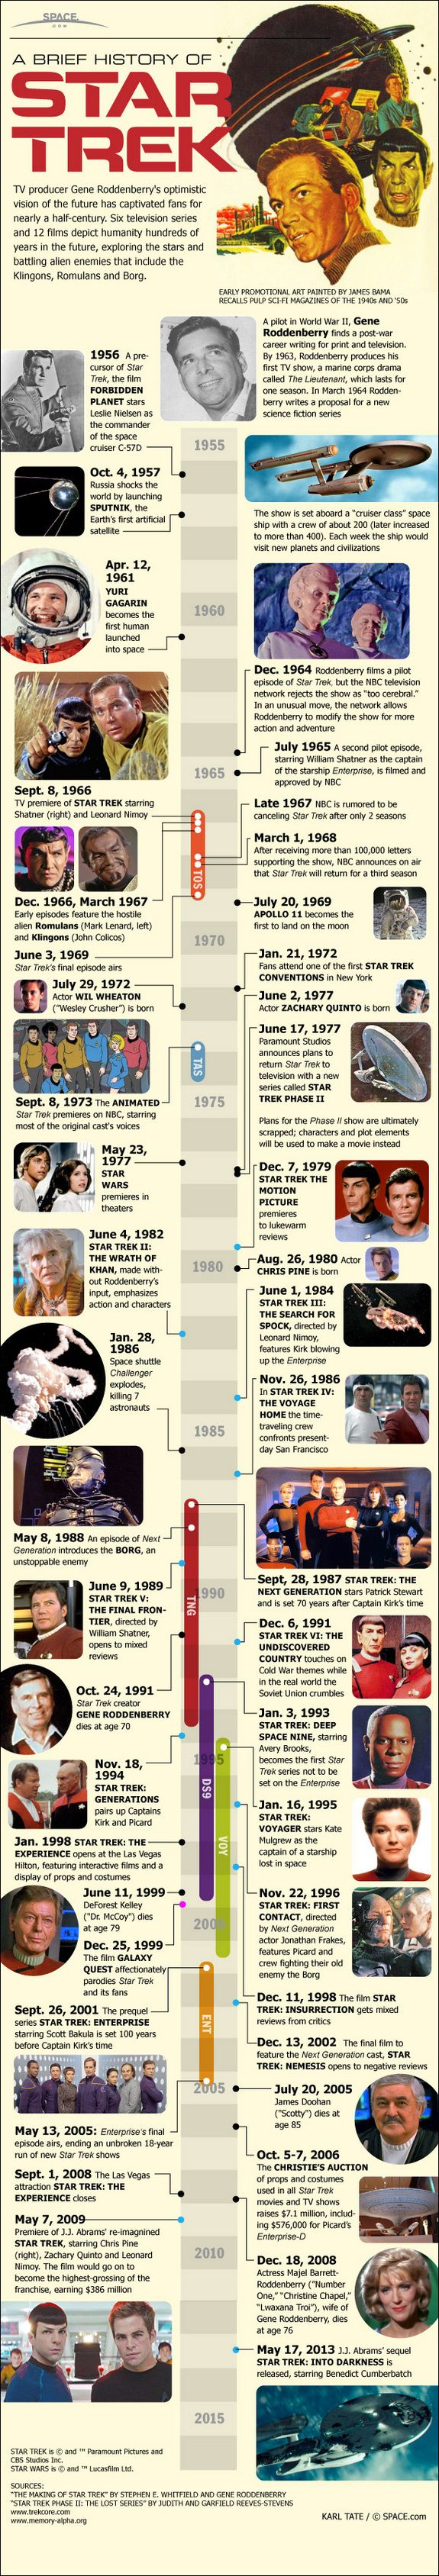 A Brief History of Star Trek [Infographic] | By: Karl Tate, via Forever Geek (#startrek #infographic)